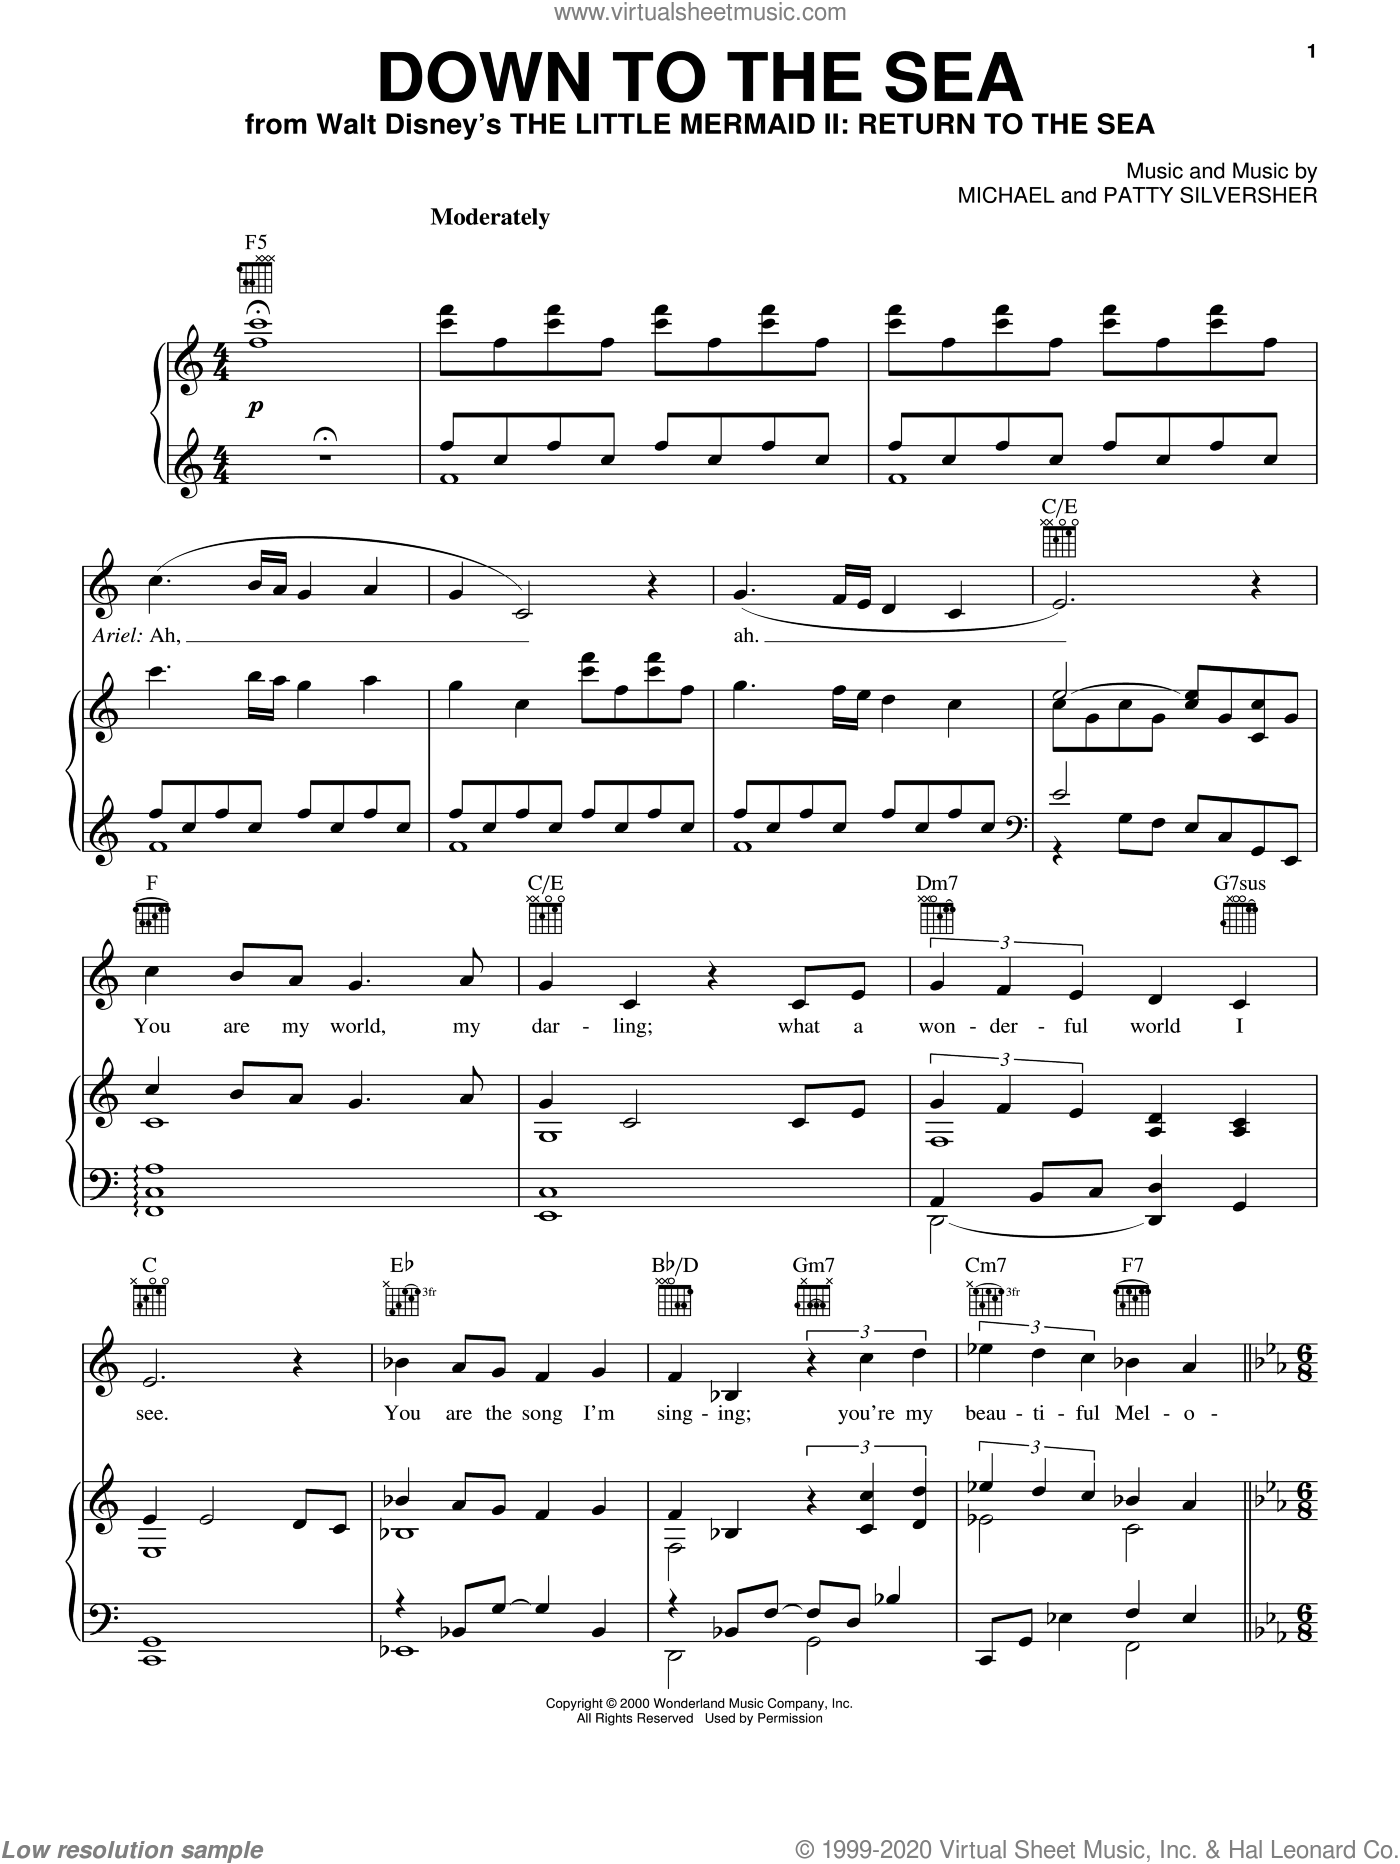 Down To The Sea sheet music for voice, piano or guitar by Patty Silversher